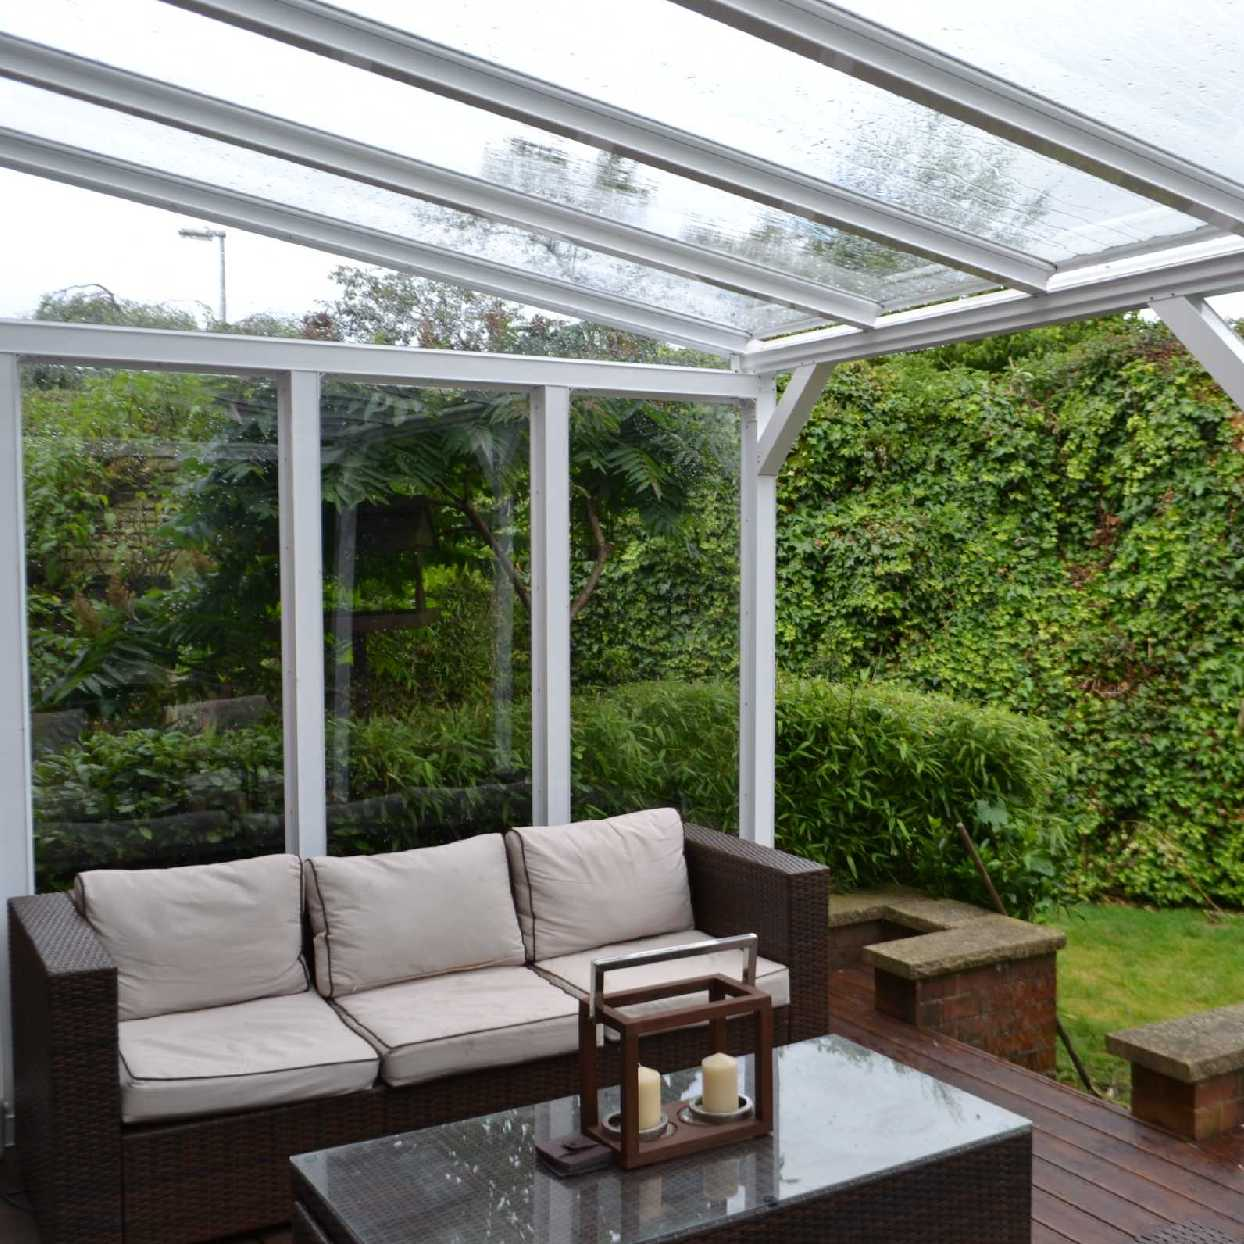 Great selection of Omega Smart Lean-To Canopy with 16mm Polycarbonate Glazing - 7.8m (W) x 4.0m (P), (4) Supporting Posts